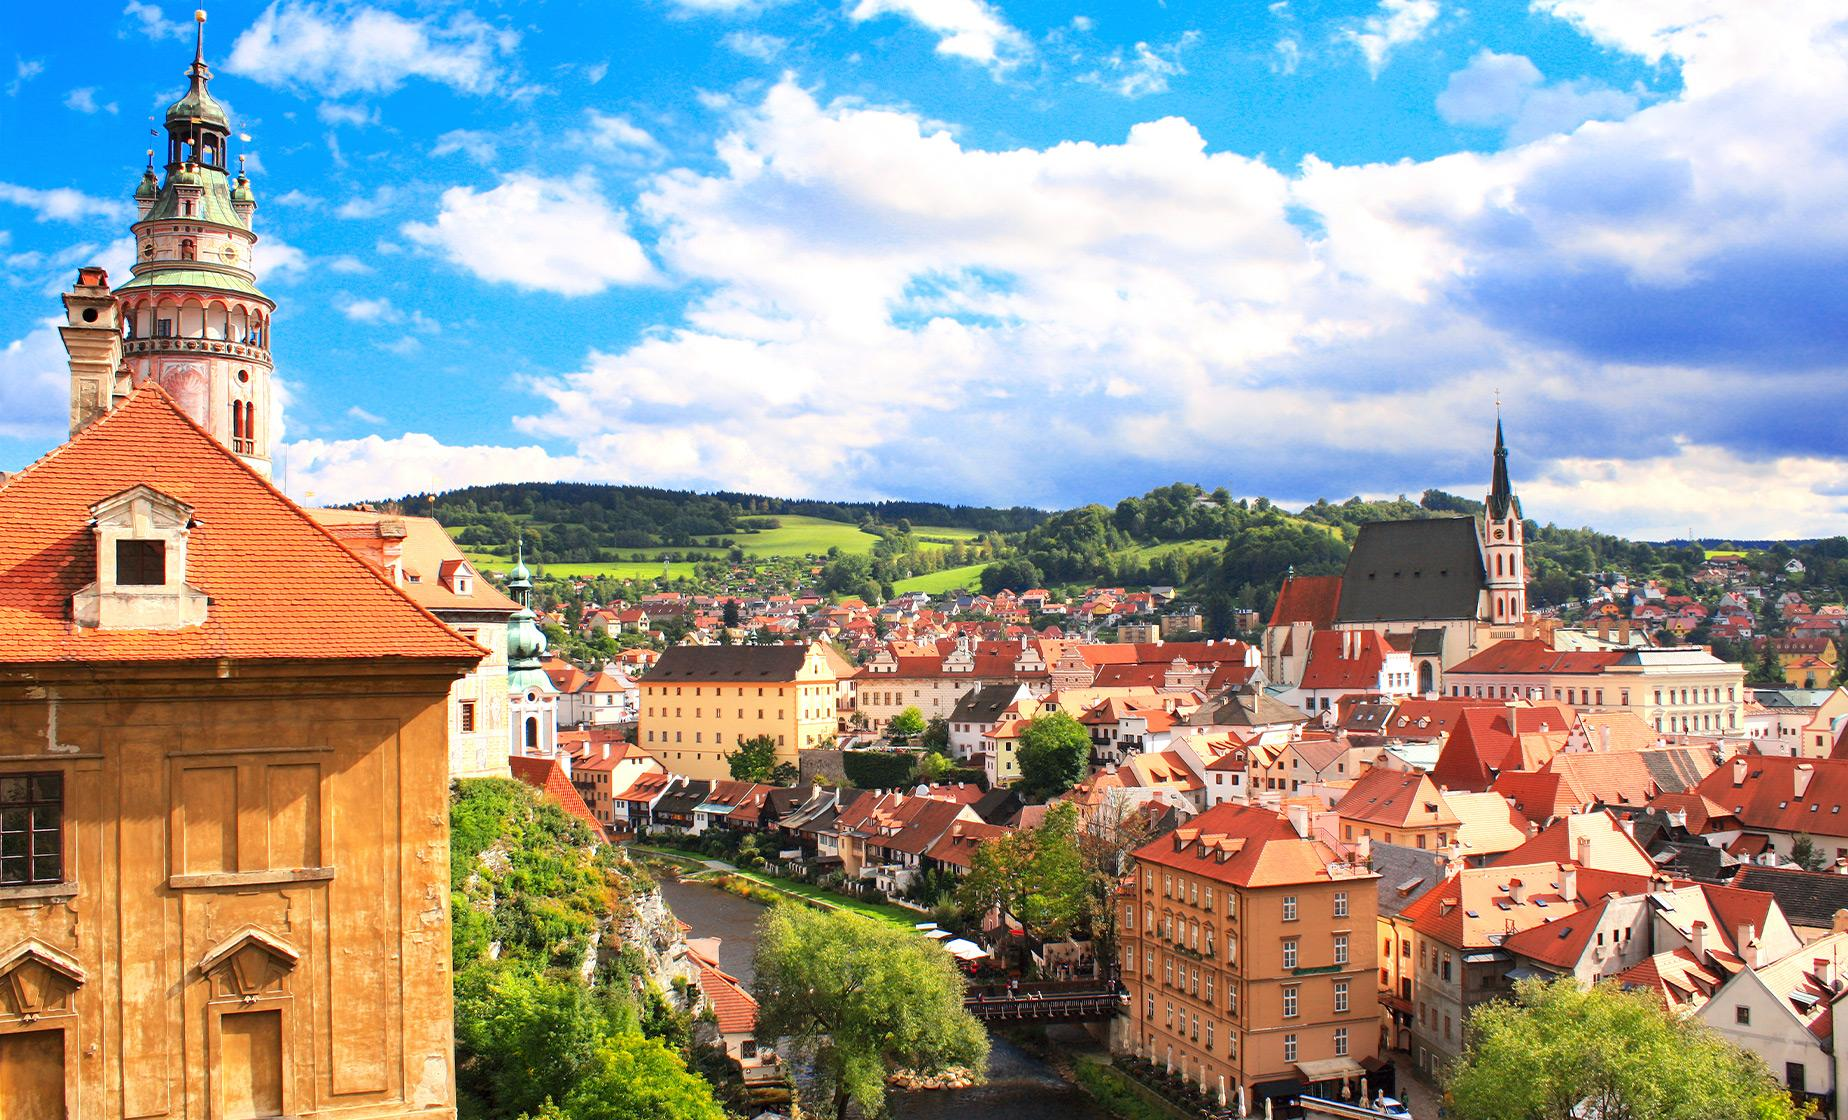 Private Guided Tour to Cesky Krumlov from Melk